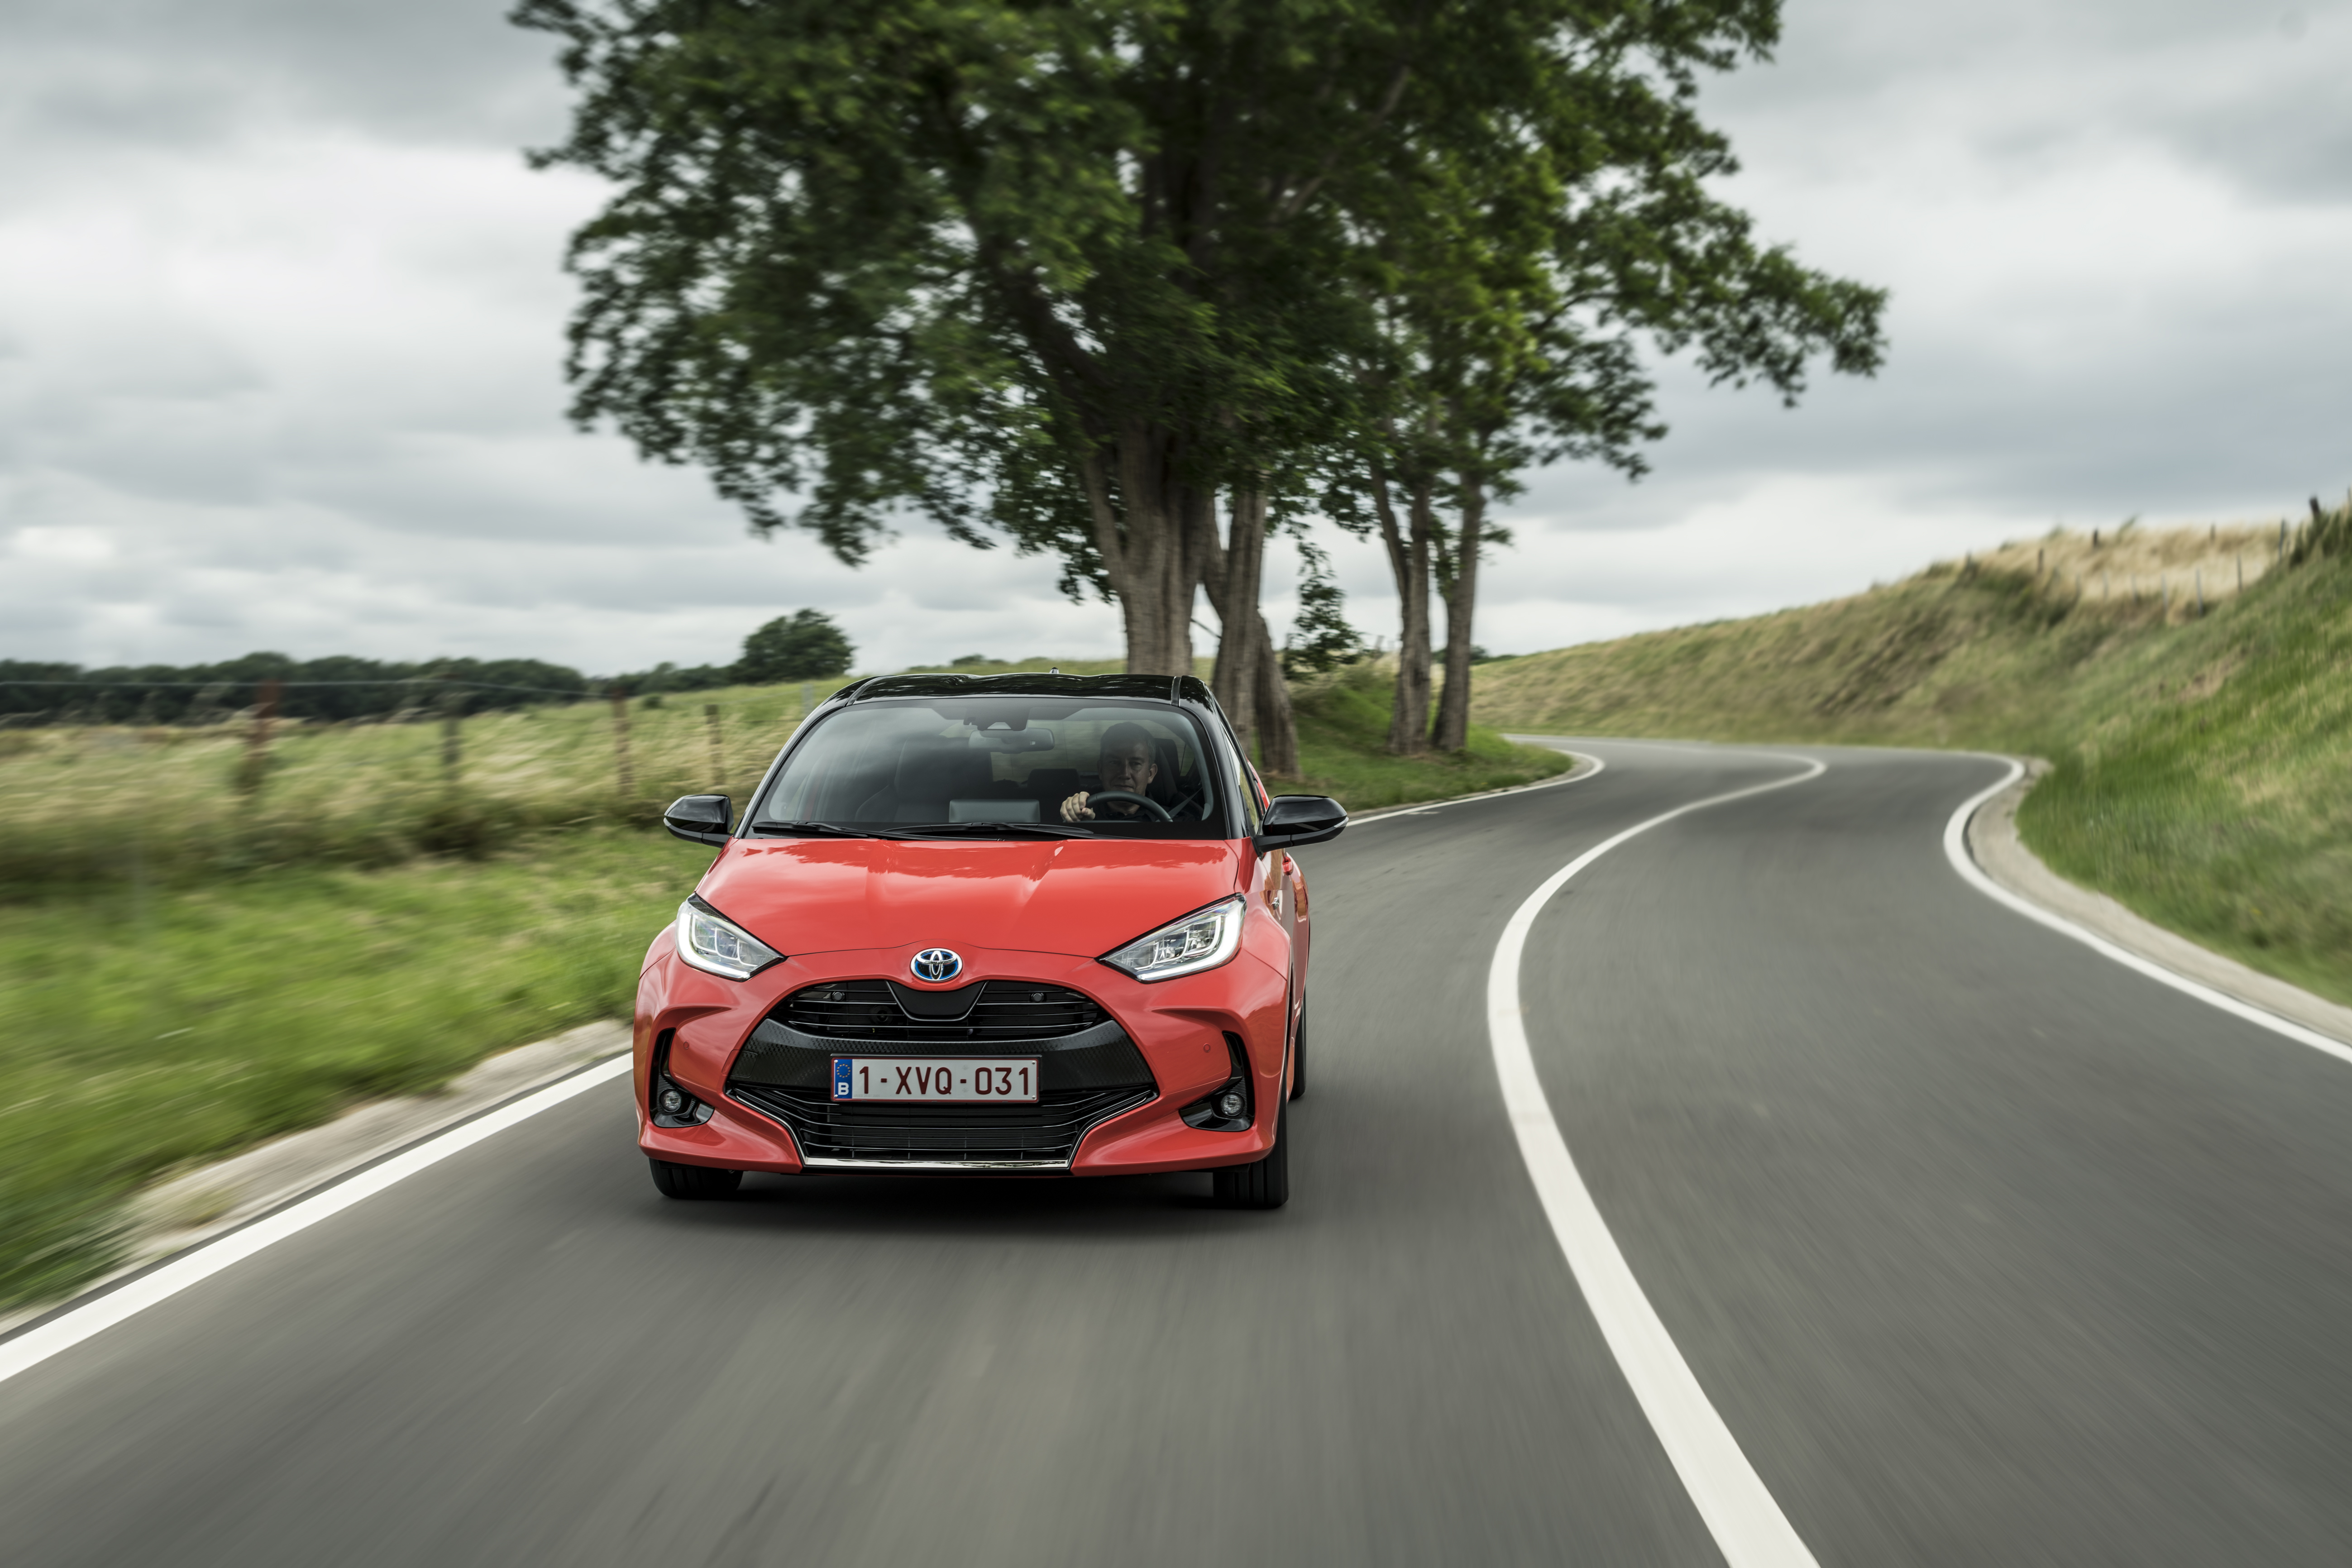 2020 toyota yaris detailed for europe - 125 ps petrol and